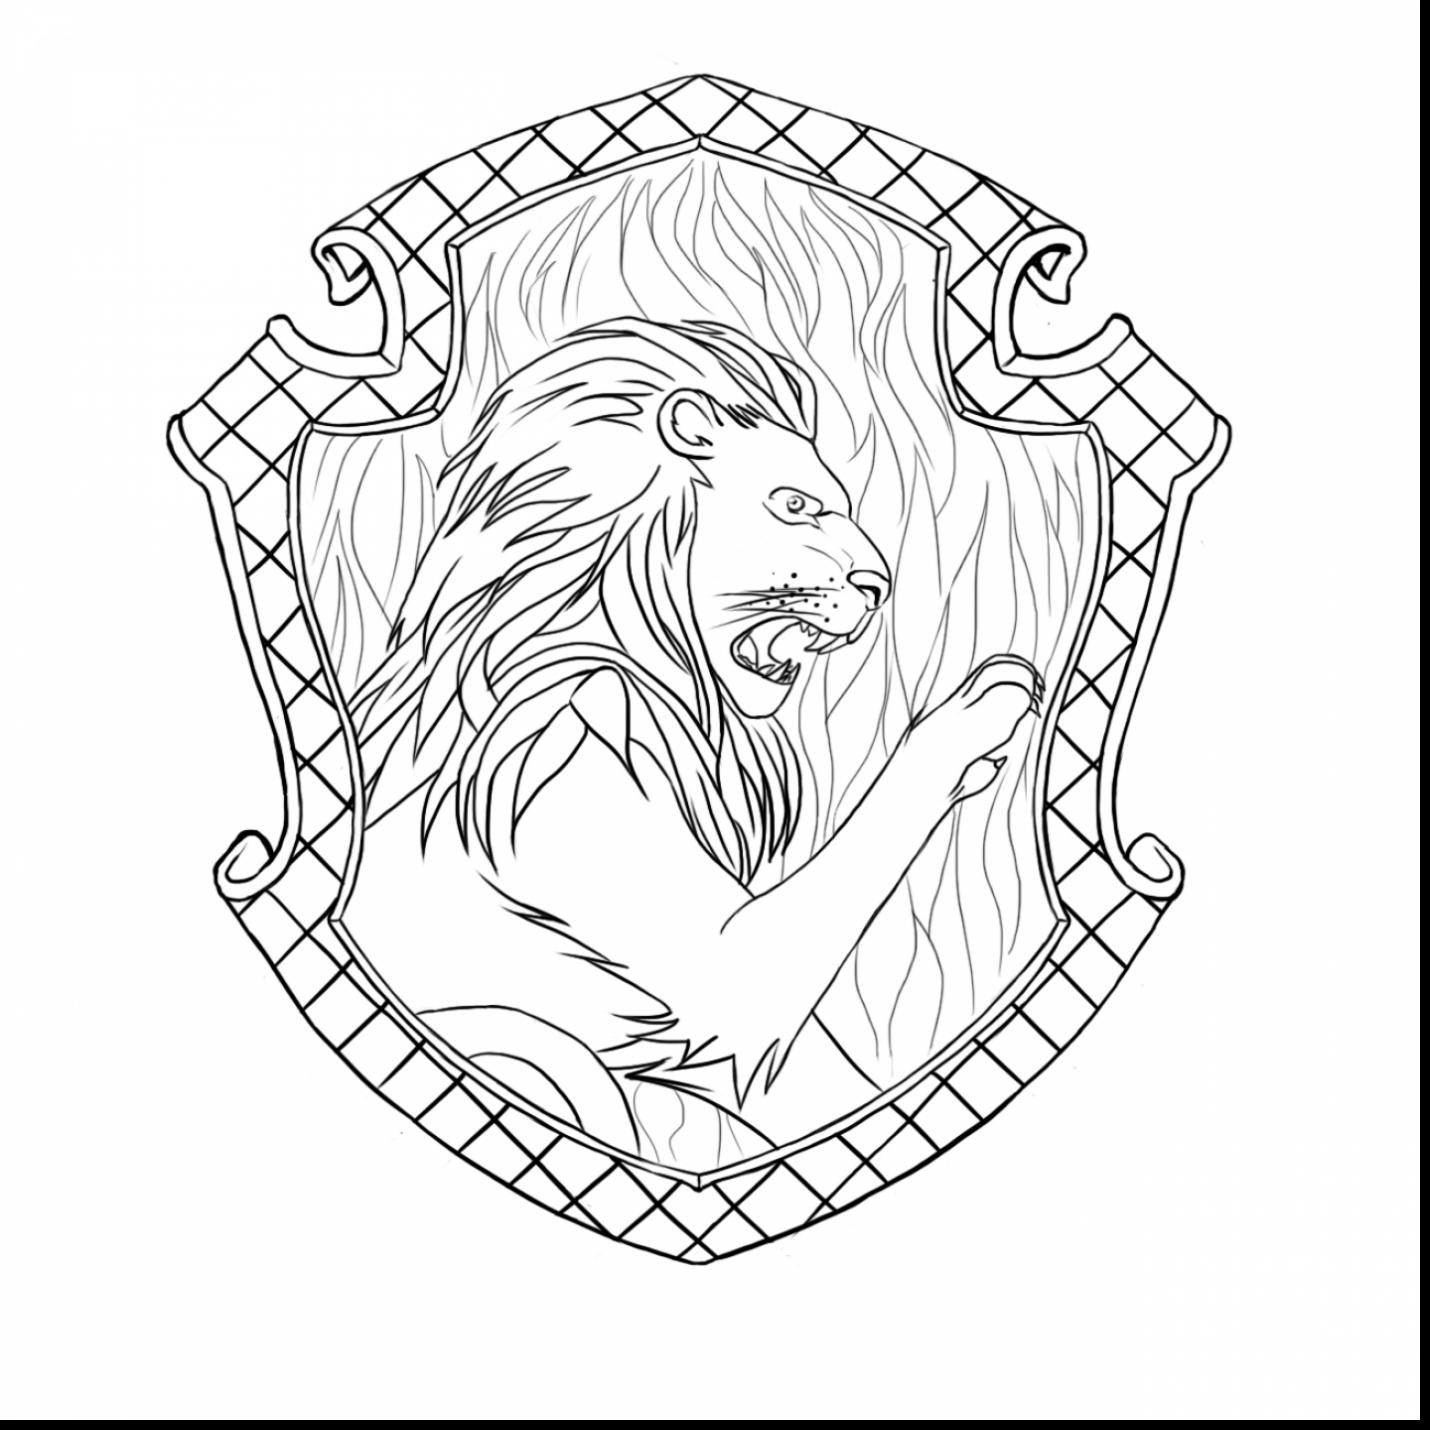 Gryffindor Coloring Page At Getcolorings